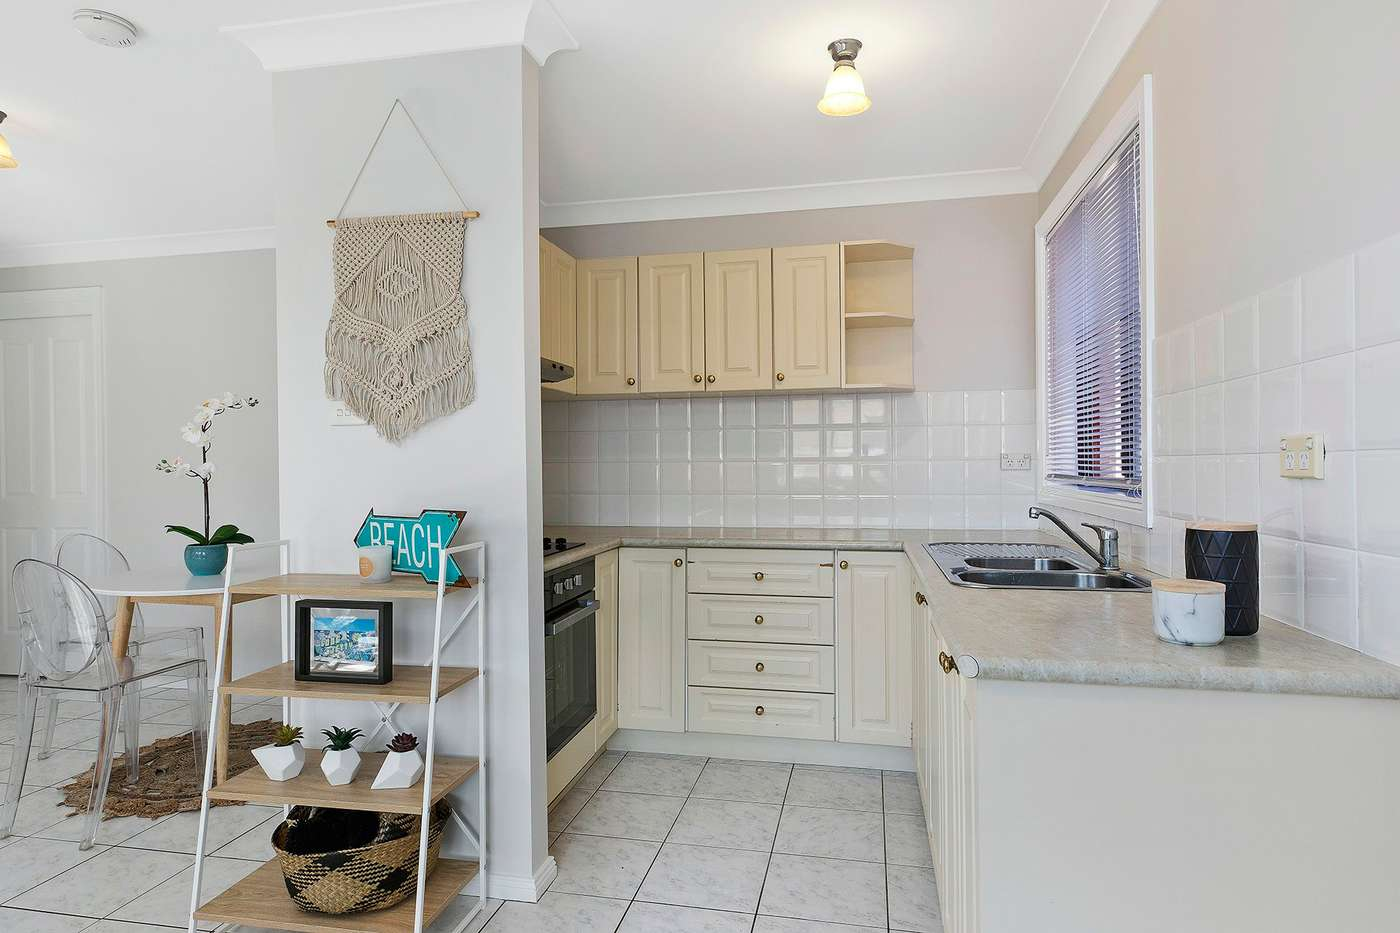 Main view of Homely house listing, 1/9 Nirvana Street, Long Jetty, NSW 2261